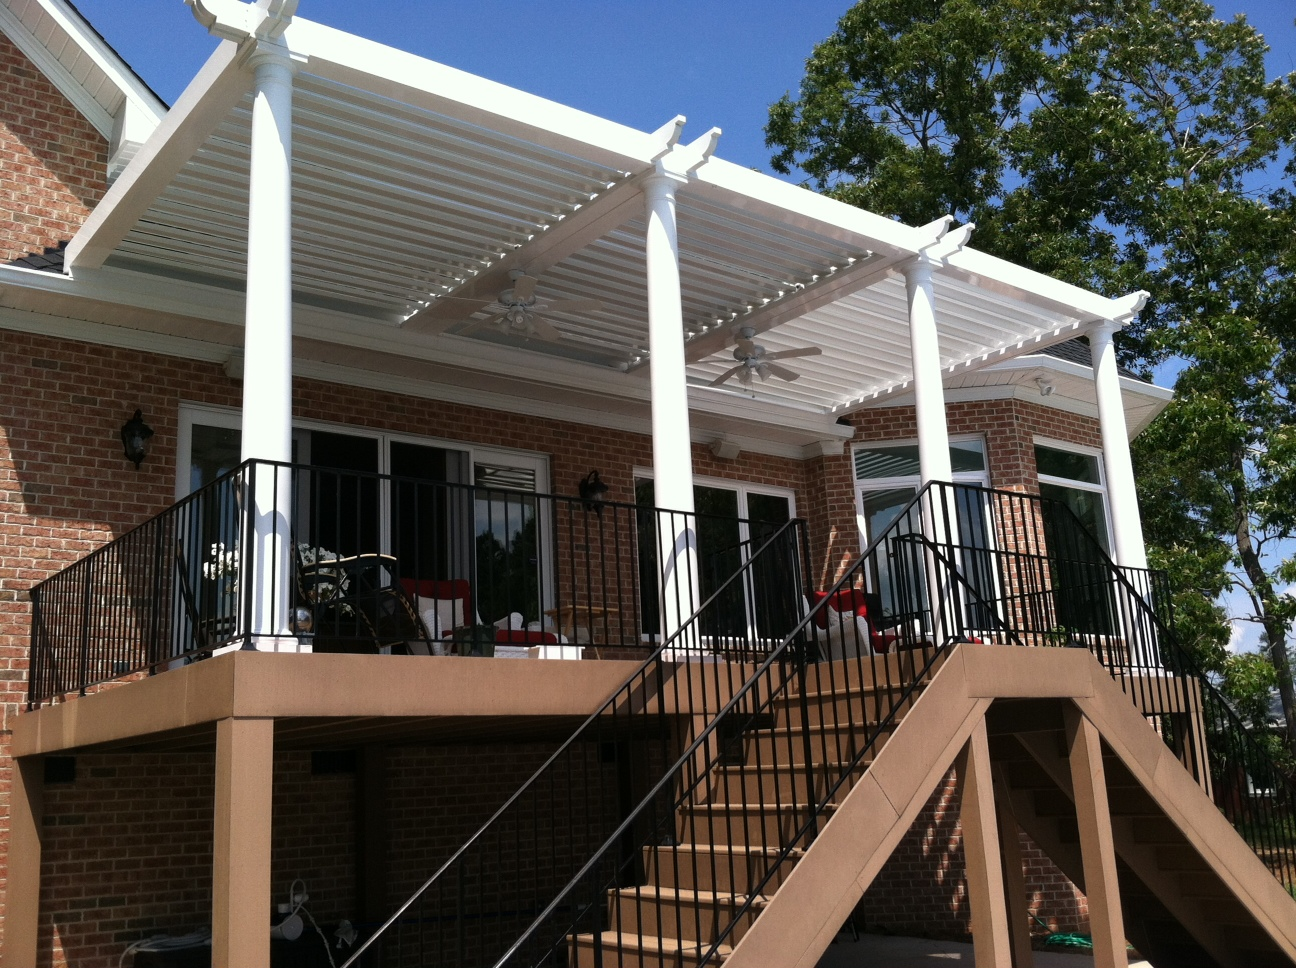 Louvered Awnings For Home 28 28 Images Louvered